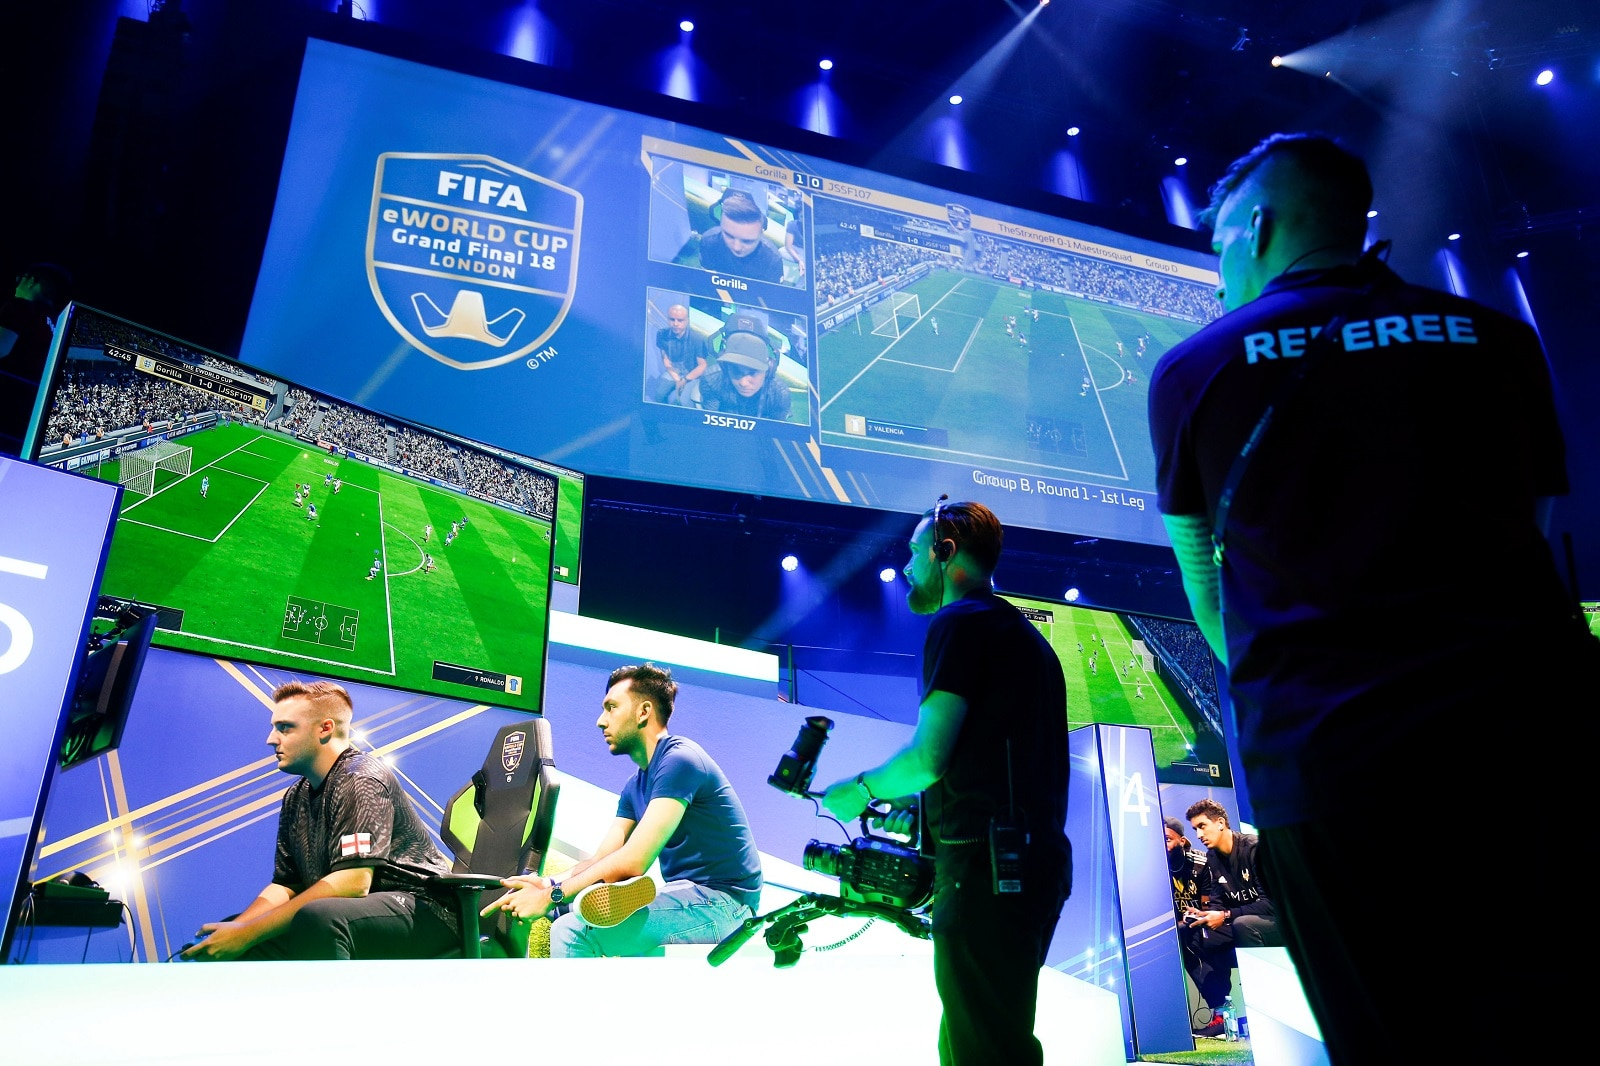 Professional Playstation player Gorilla, real name Spencer Ealing, reacts while playing in the group stages of the FIFA eWorld Grand Final at the O2 Arena in London, Britain August 2, 2018. REUTERS/Henry Nicholls